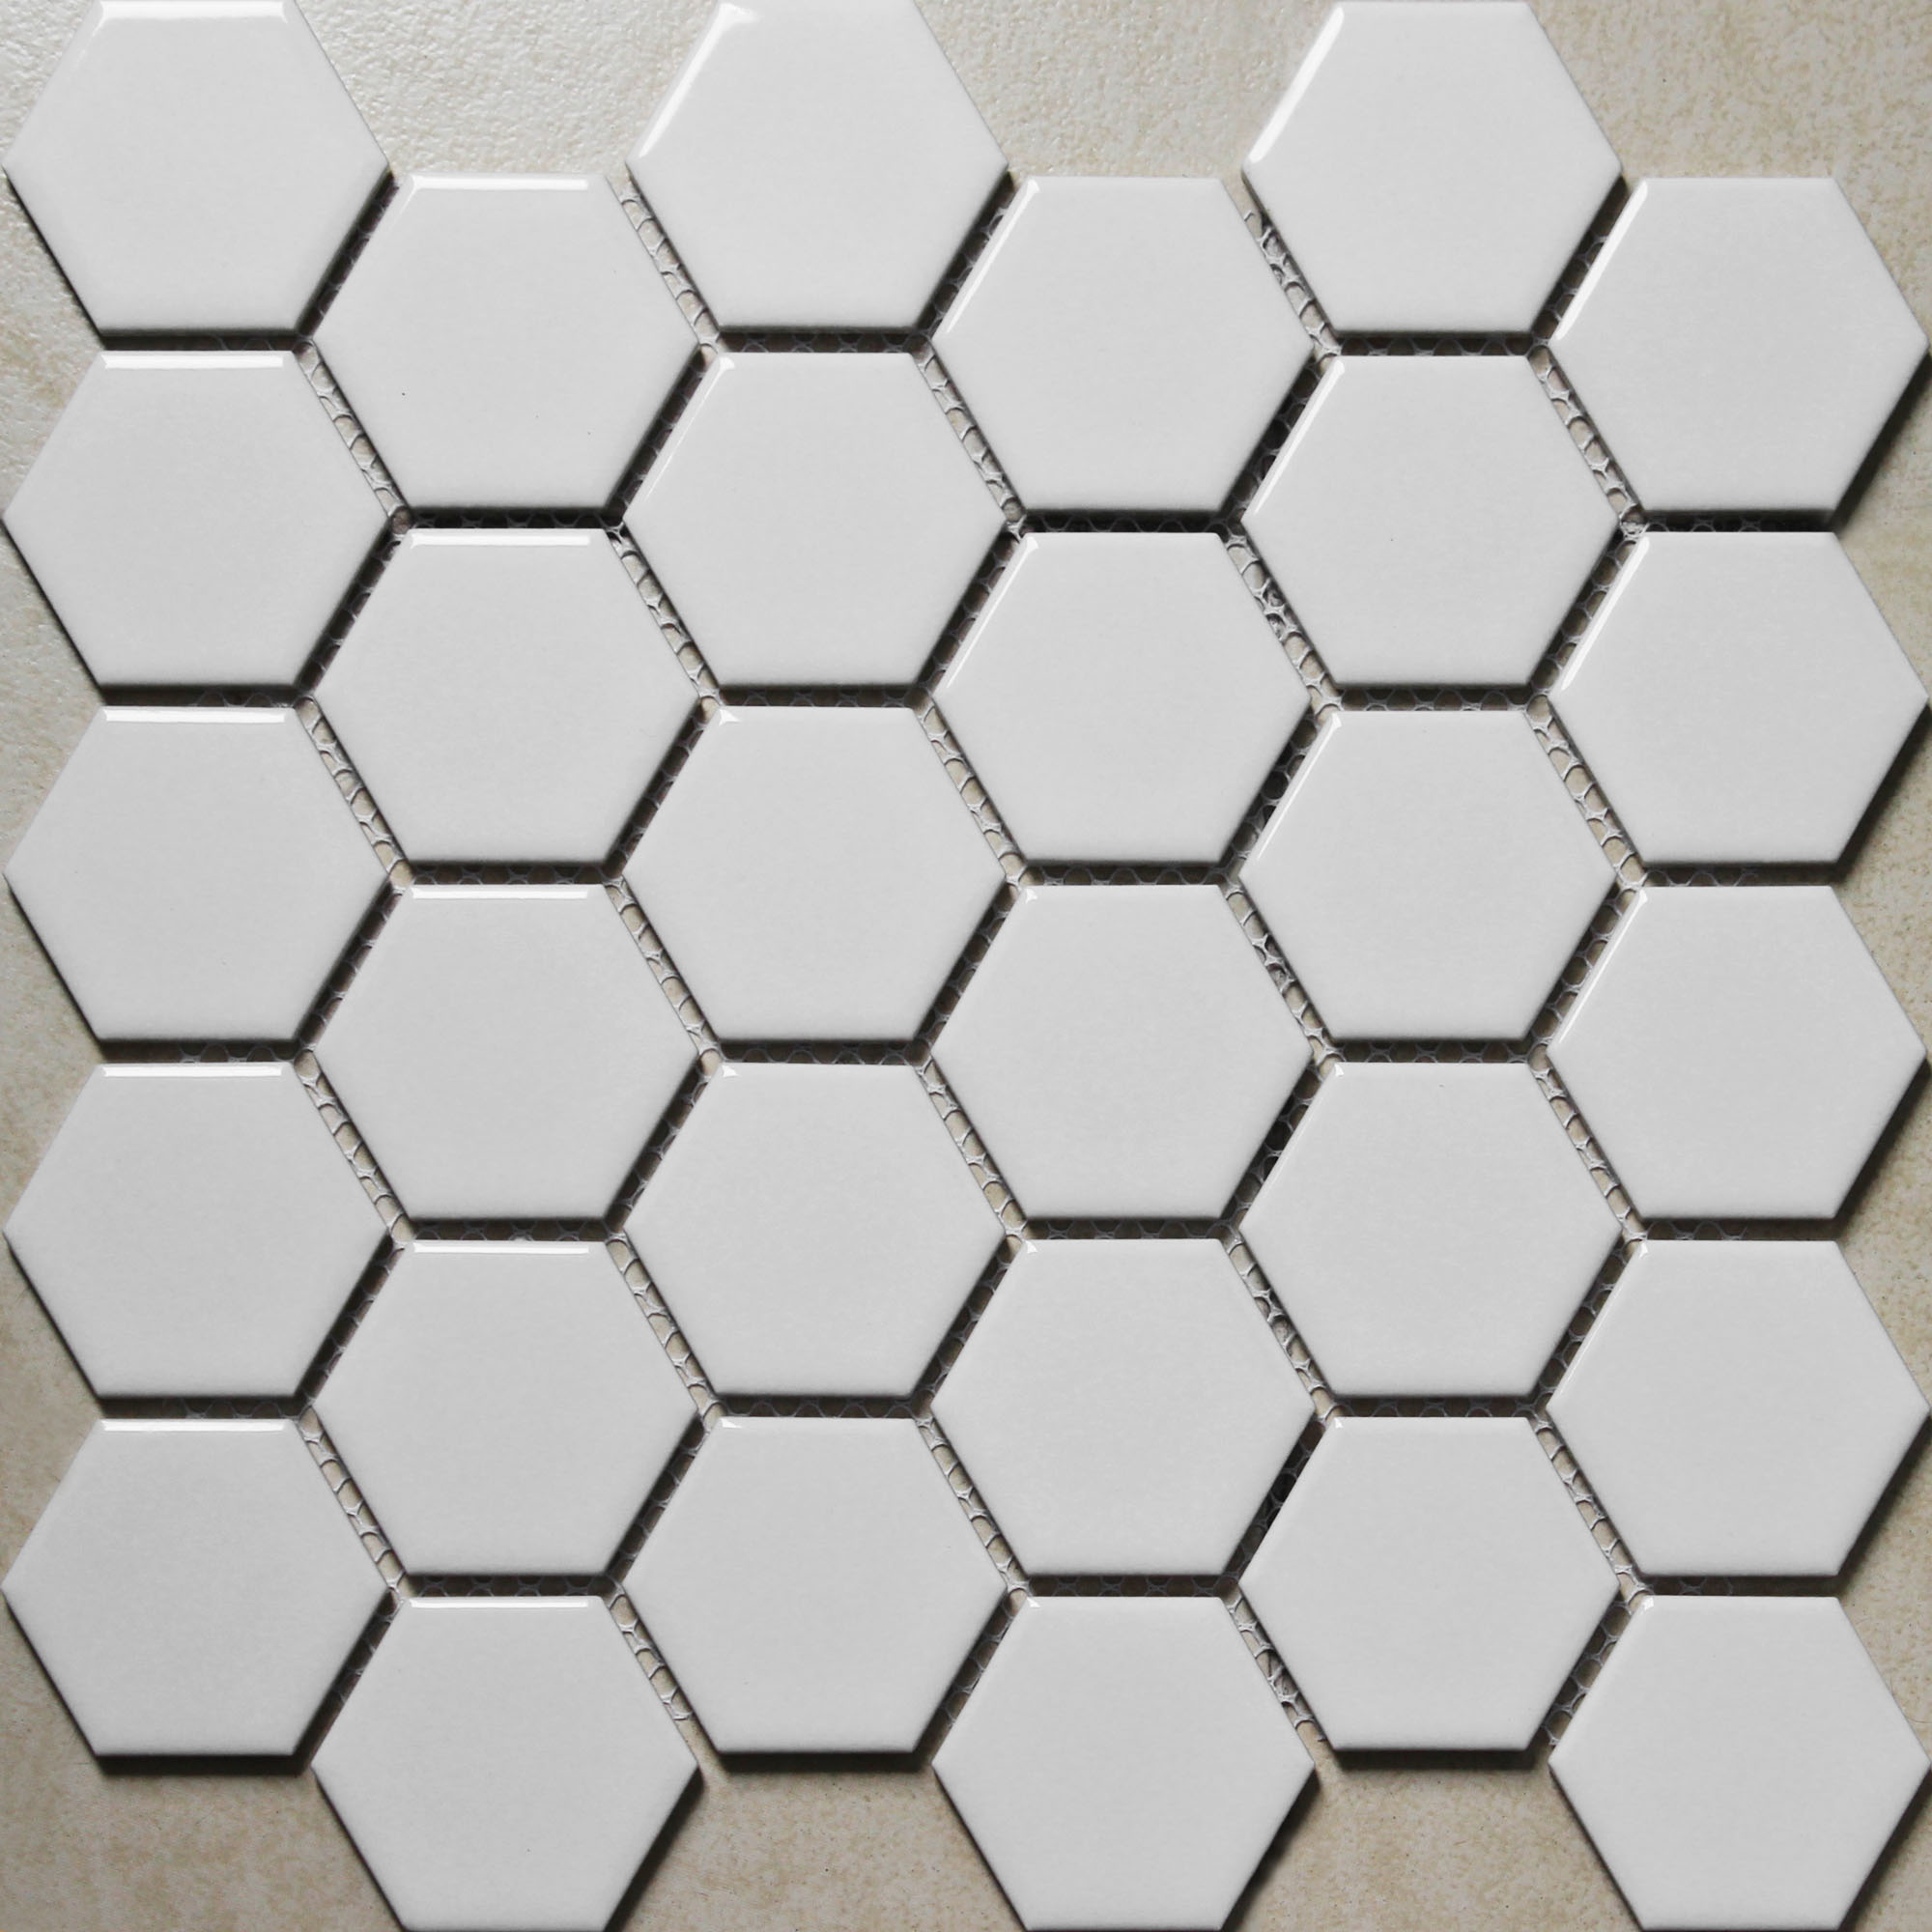 White Porcelain Mosaic Tile Sheets Large Hexagon Ceramic